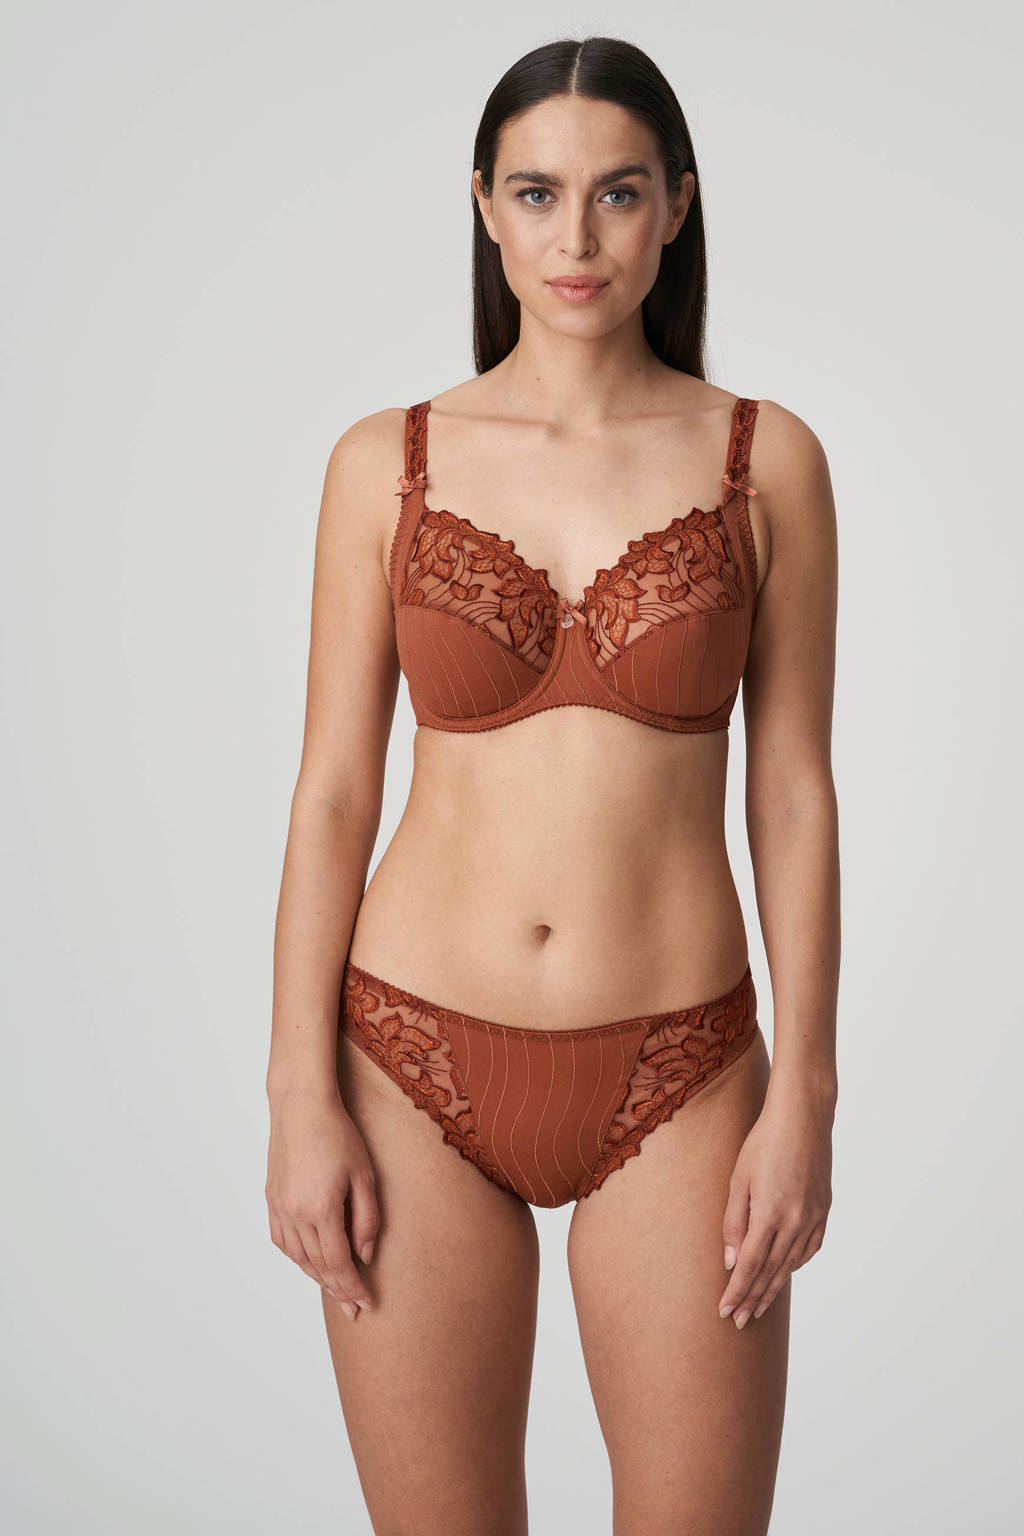 PrimaDonna beugelbh Deauville roestbruin, Roestbruin